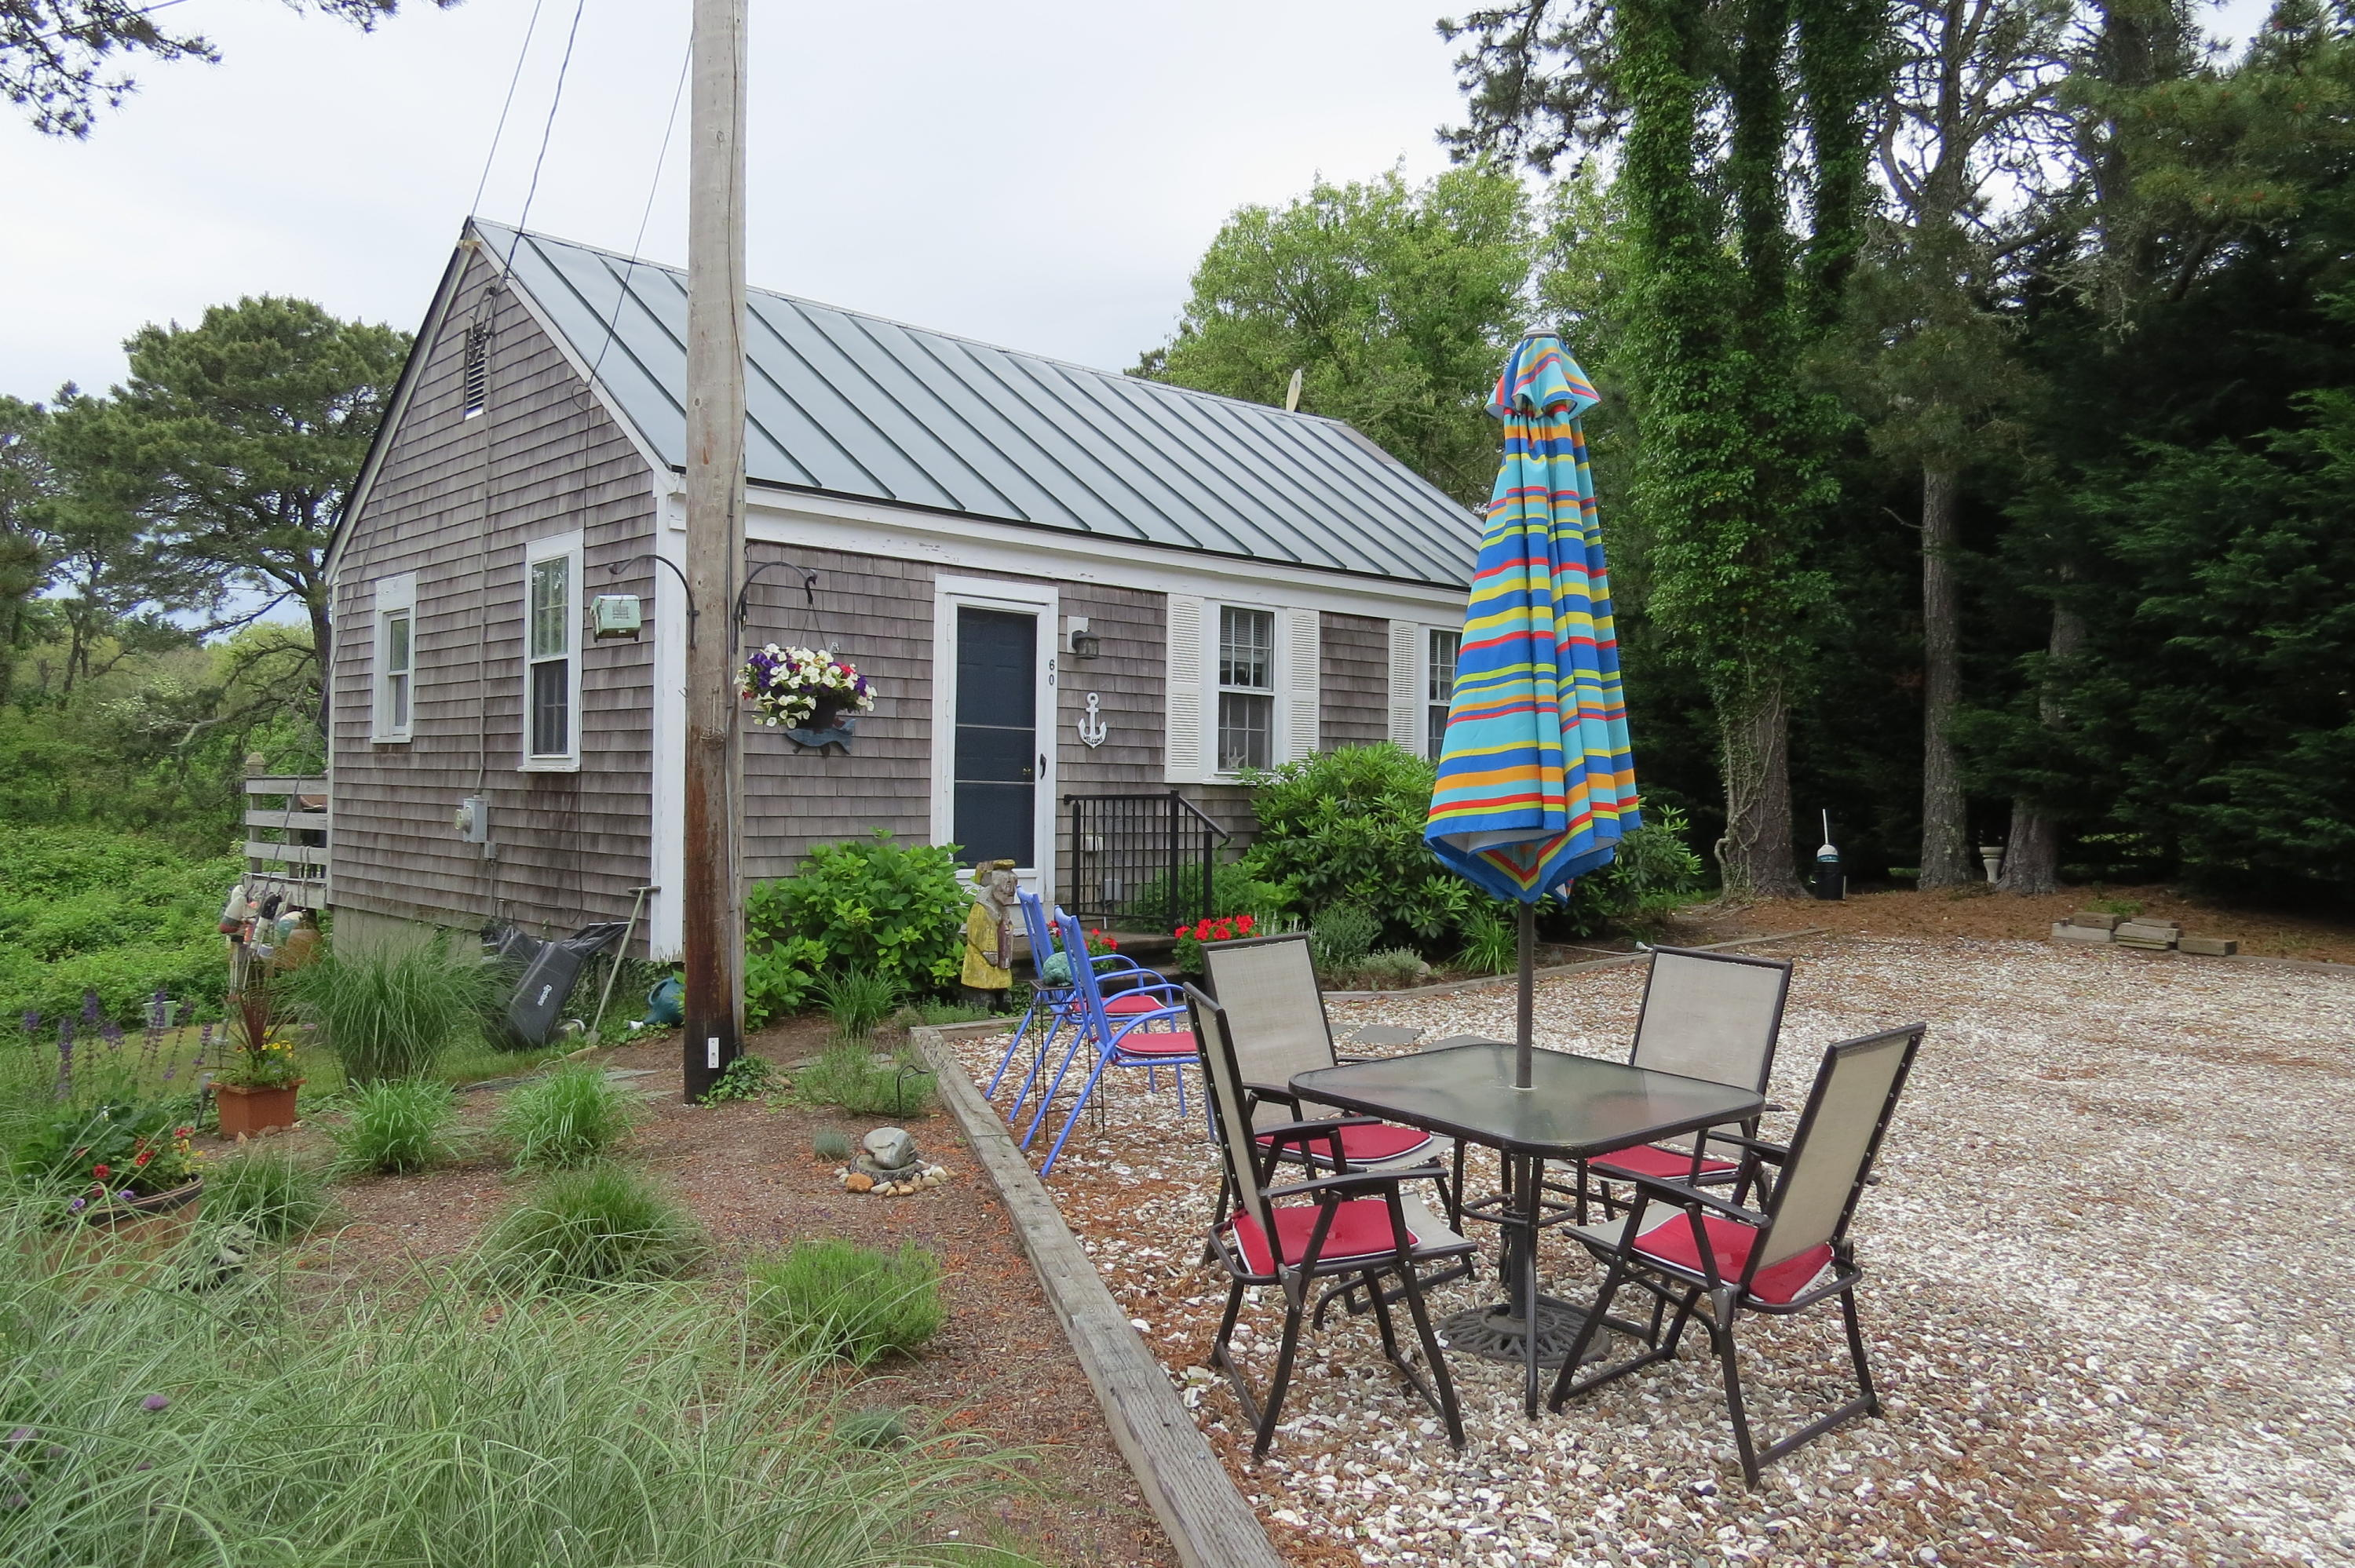 Chatham Real Estate - Cape Cod , 60 Snow Lane, Chatham MA, 02633   Listed at $379,000